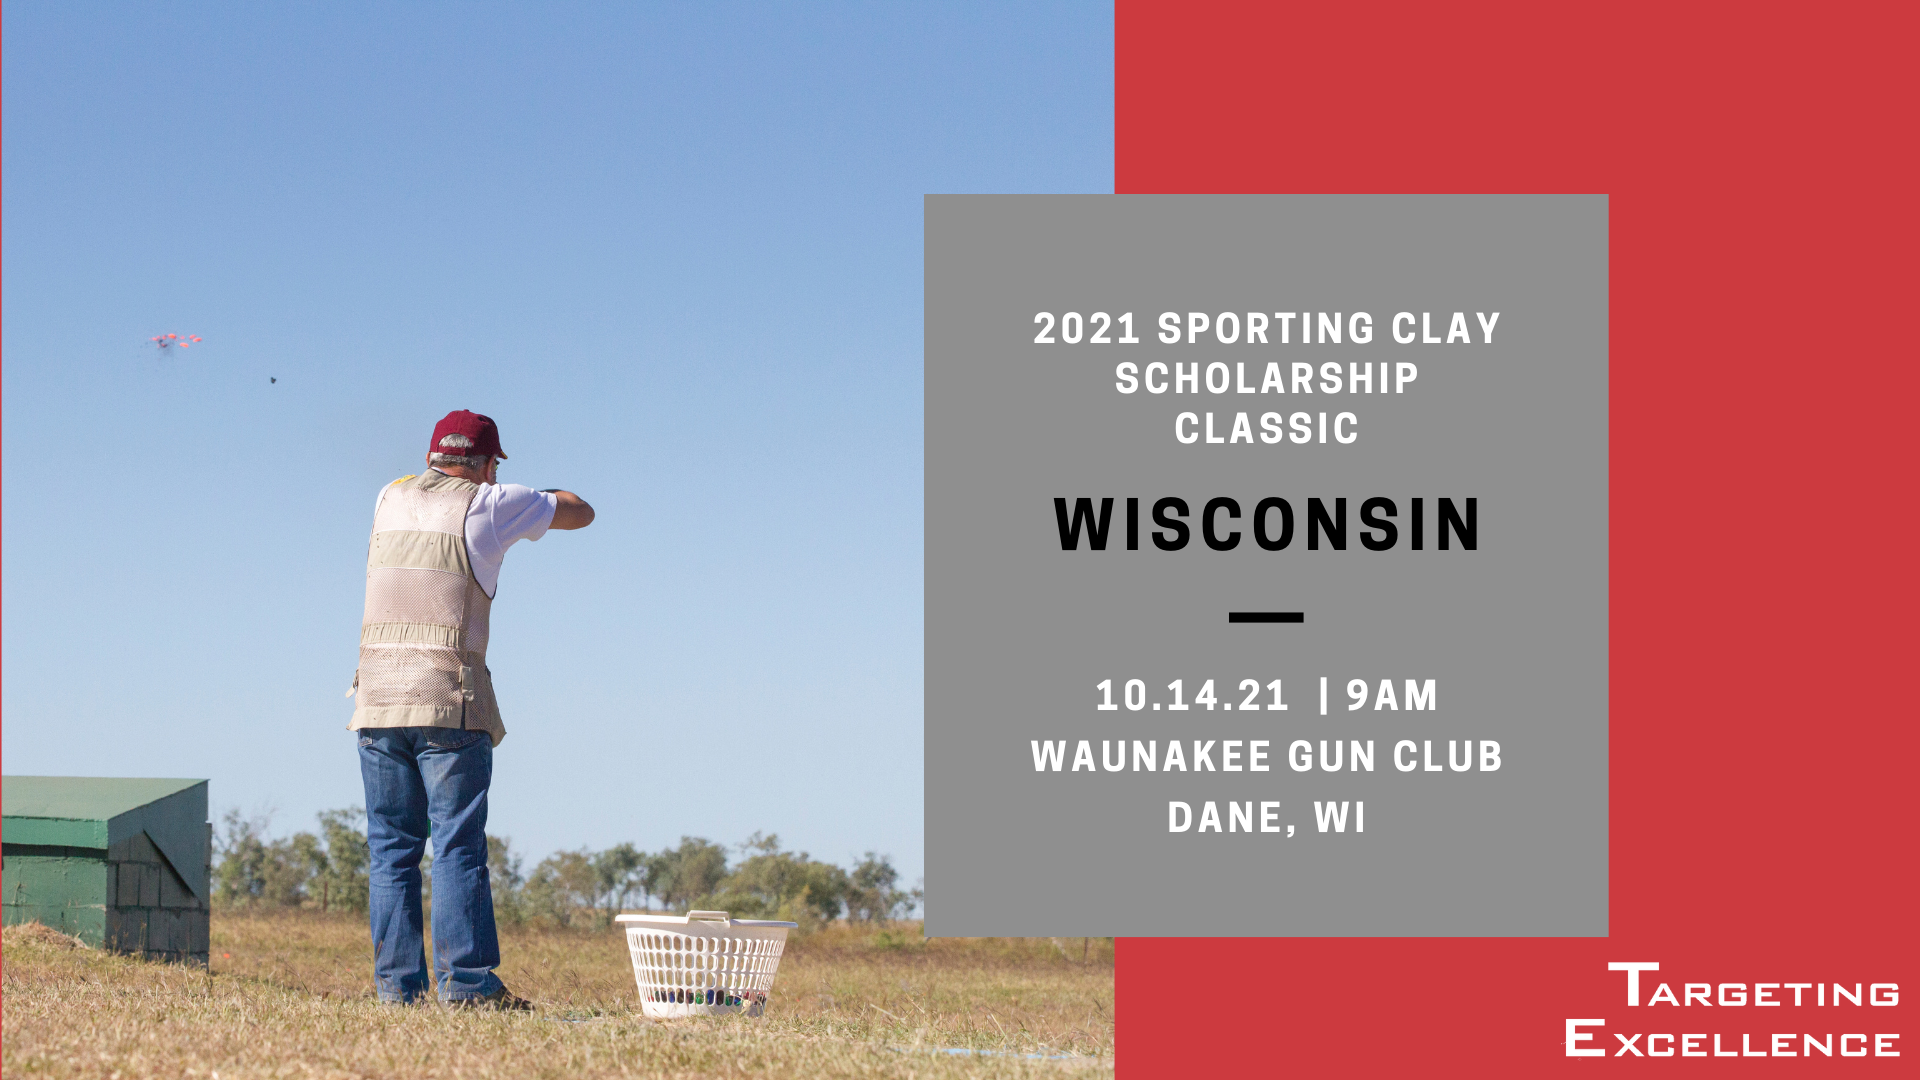 2021 Wisconsin Targeting Excellence Sporting Clay Scholarship Classic